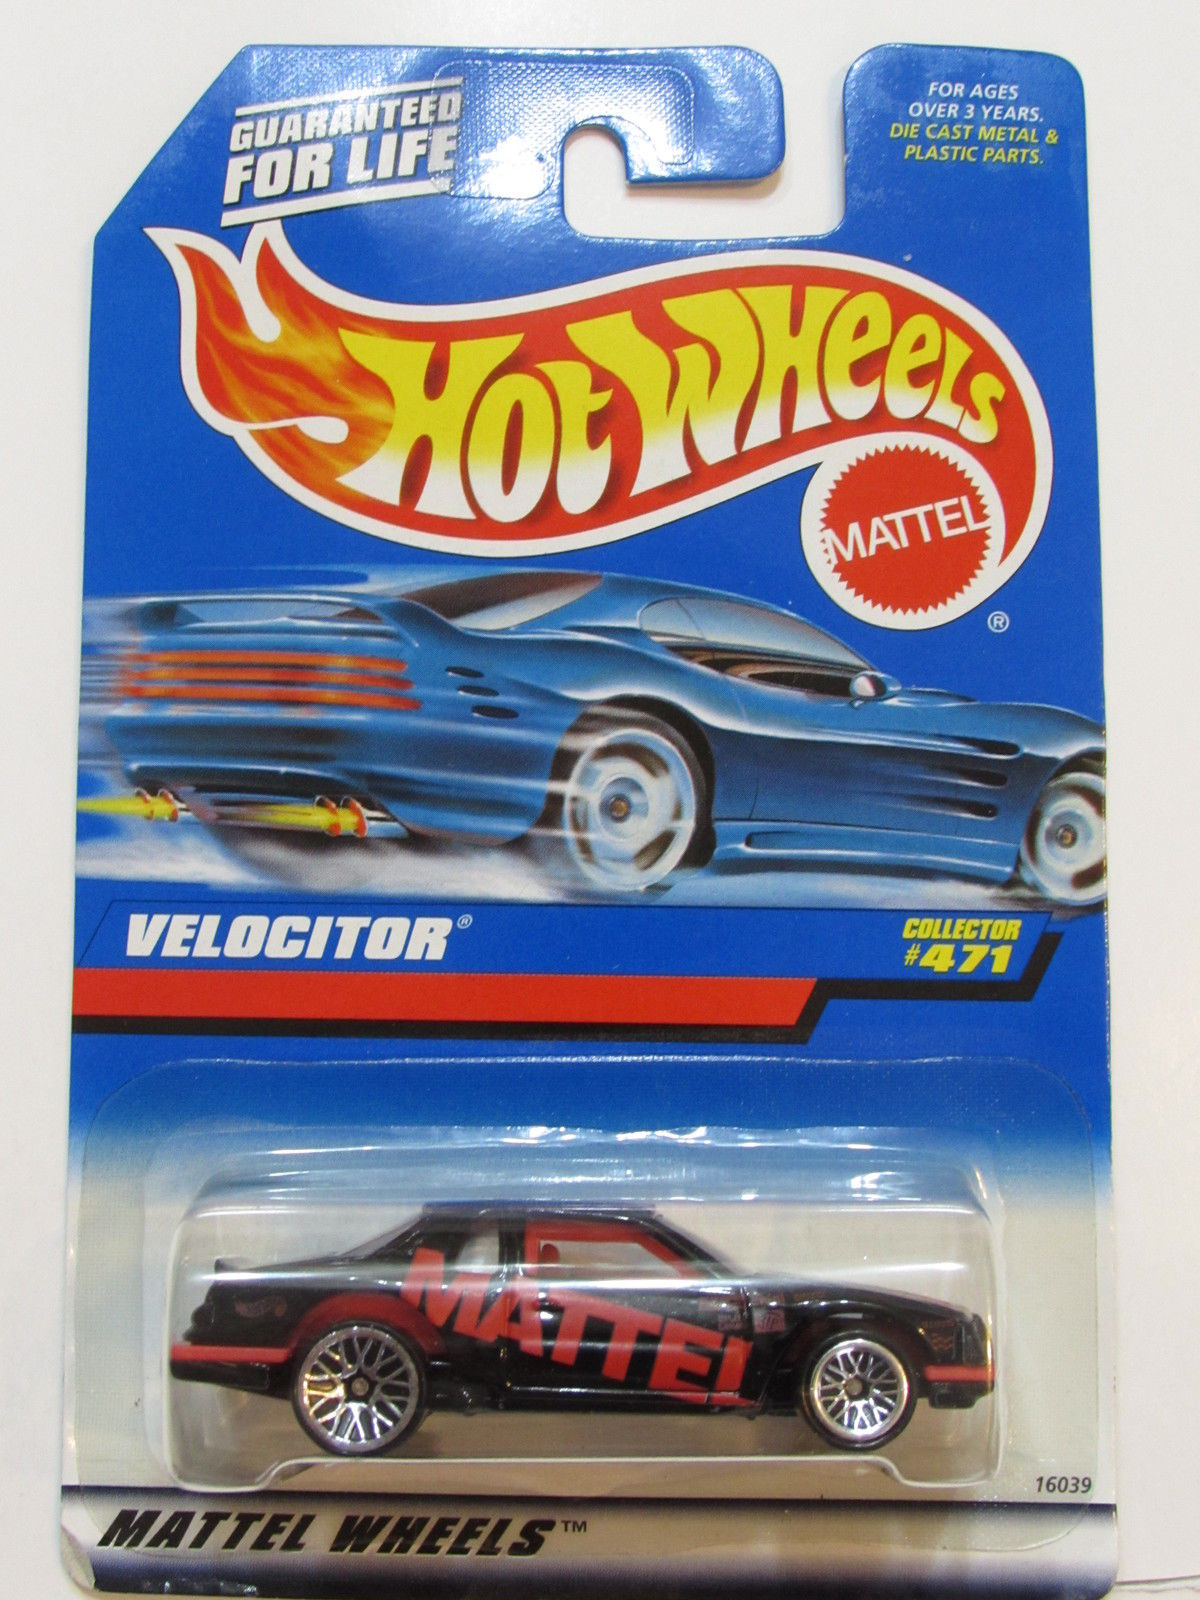 HOT WHEELS 1998 #471 VELOCITOR